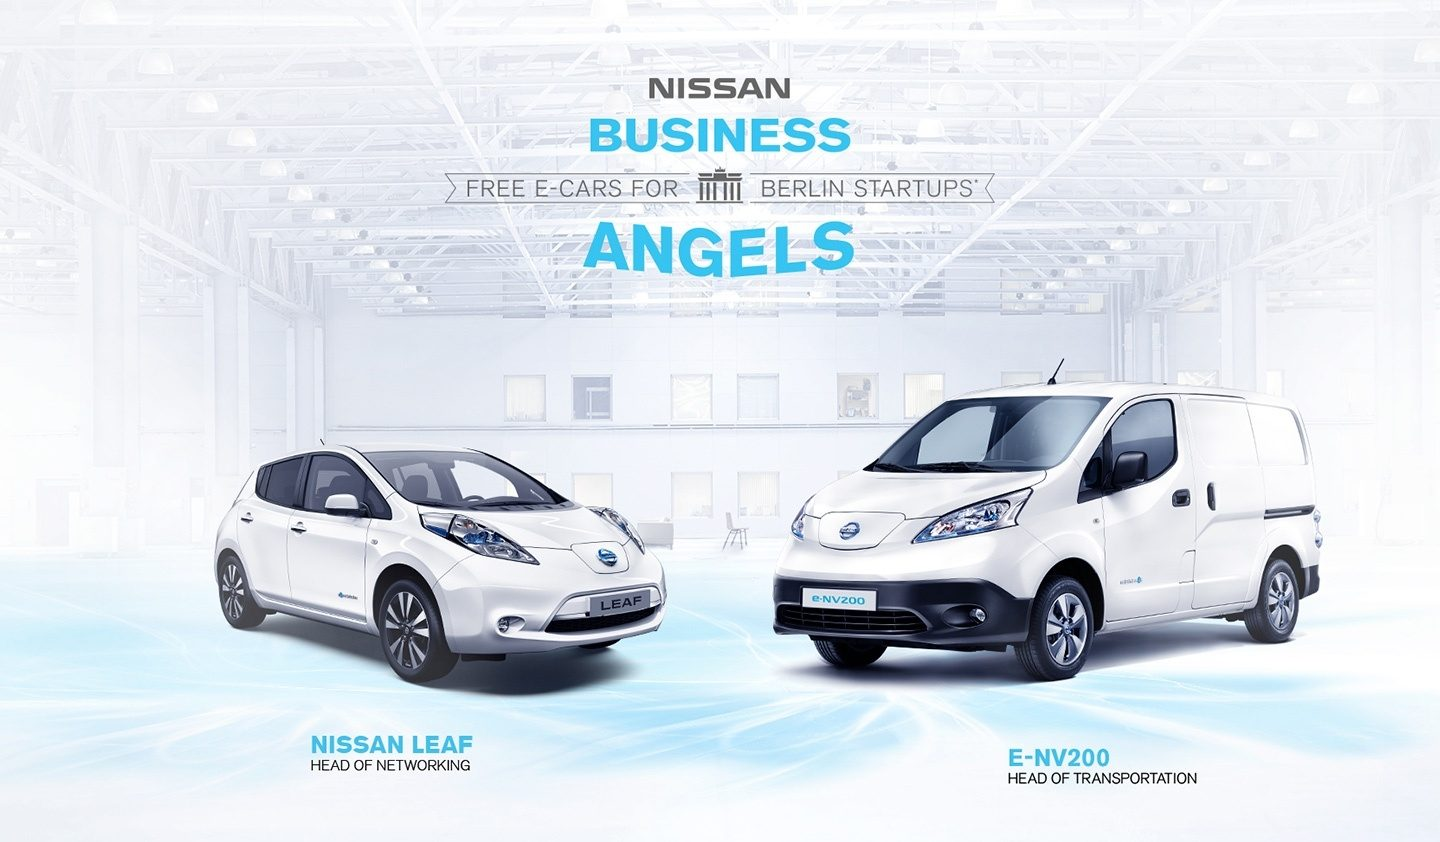 NISSAN Business Angels